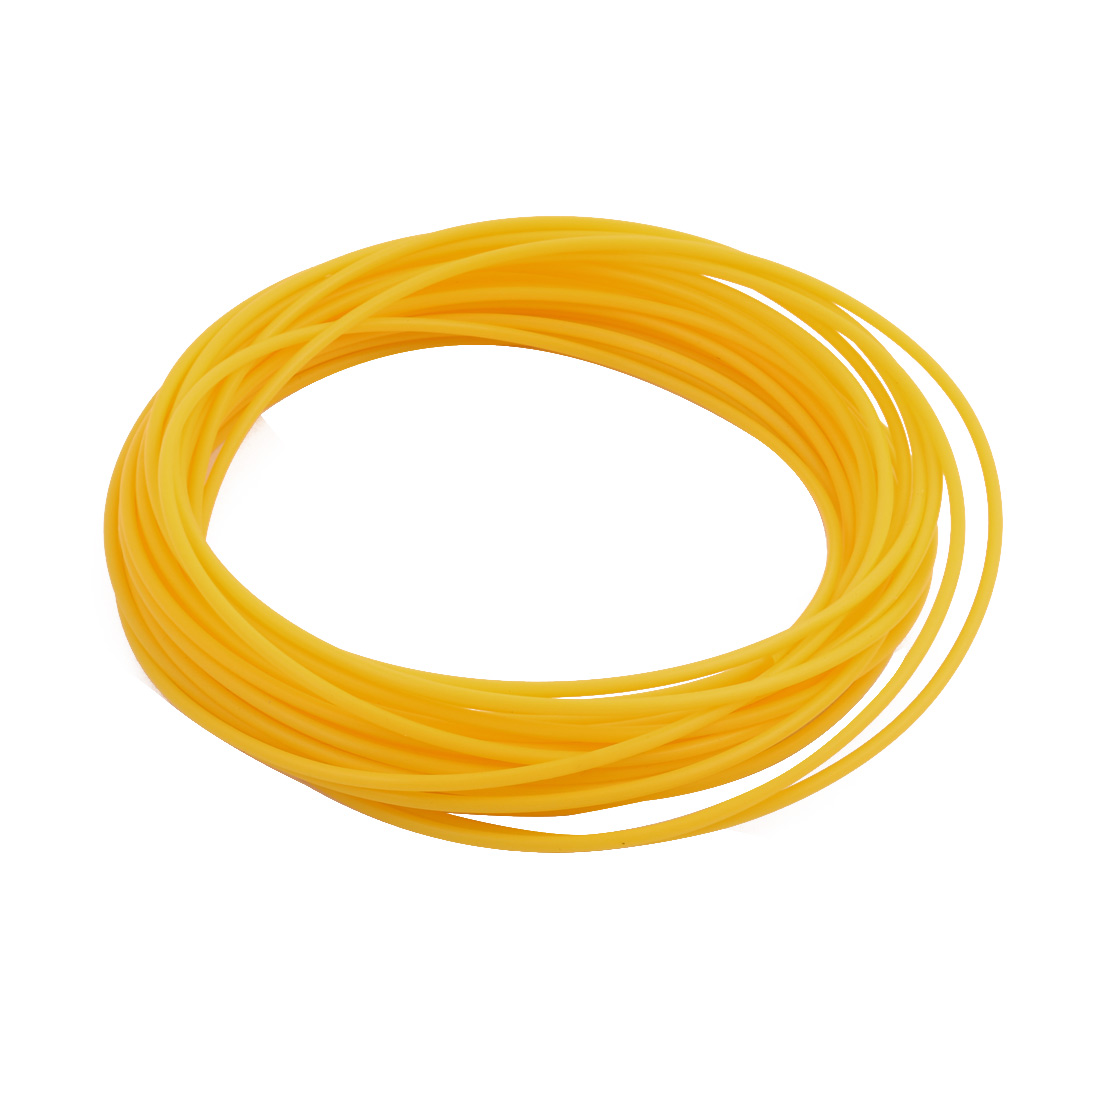 2.16mmx2.56mm PTFE Resistant High Temperature Yellow Tubing 10 Meters 32.8Ft